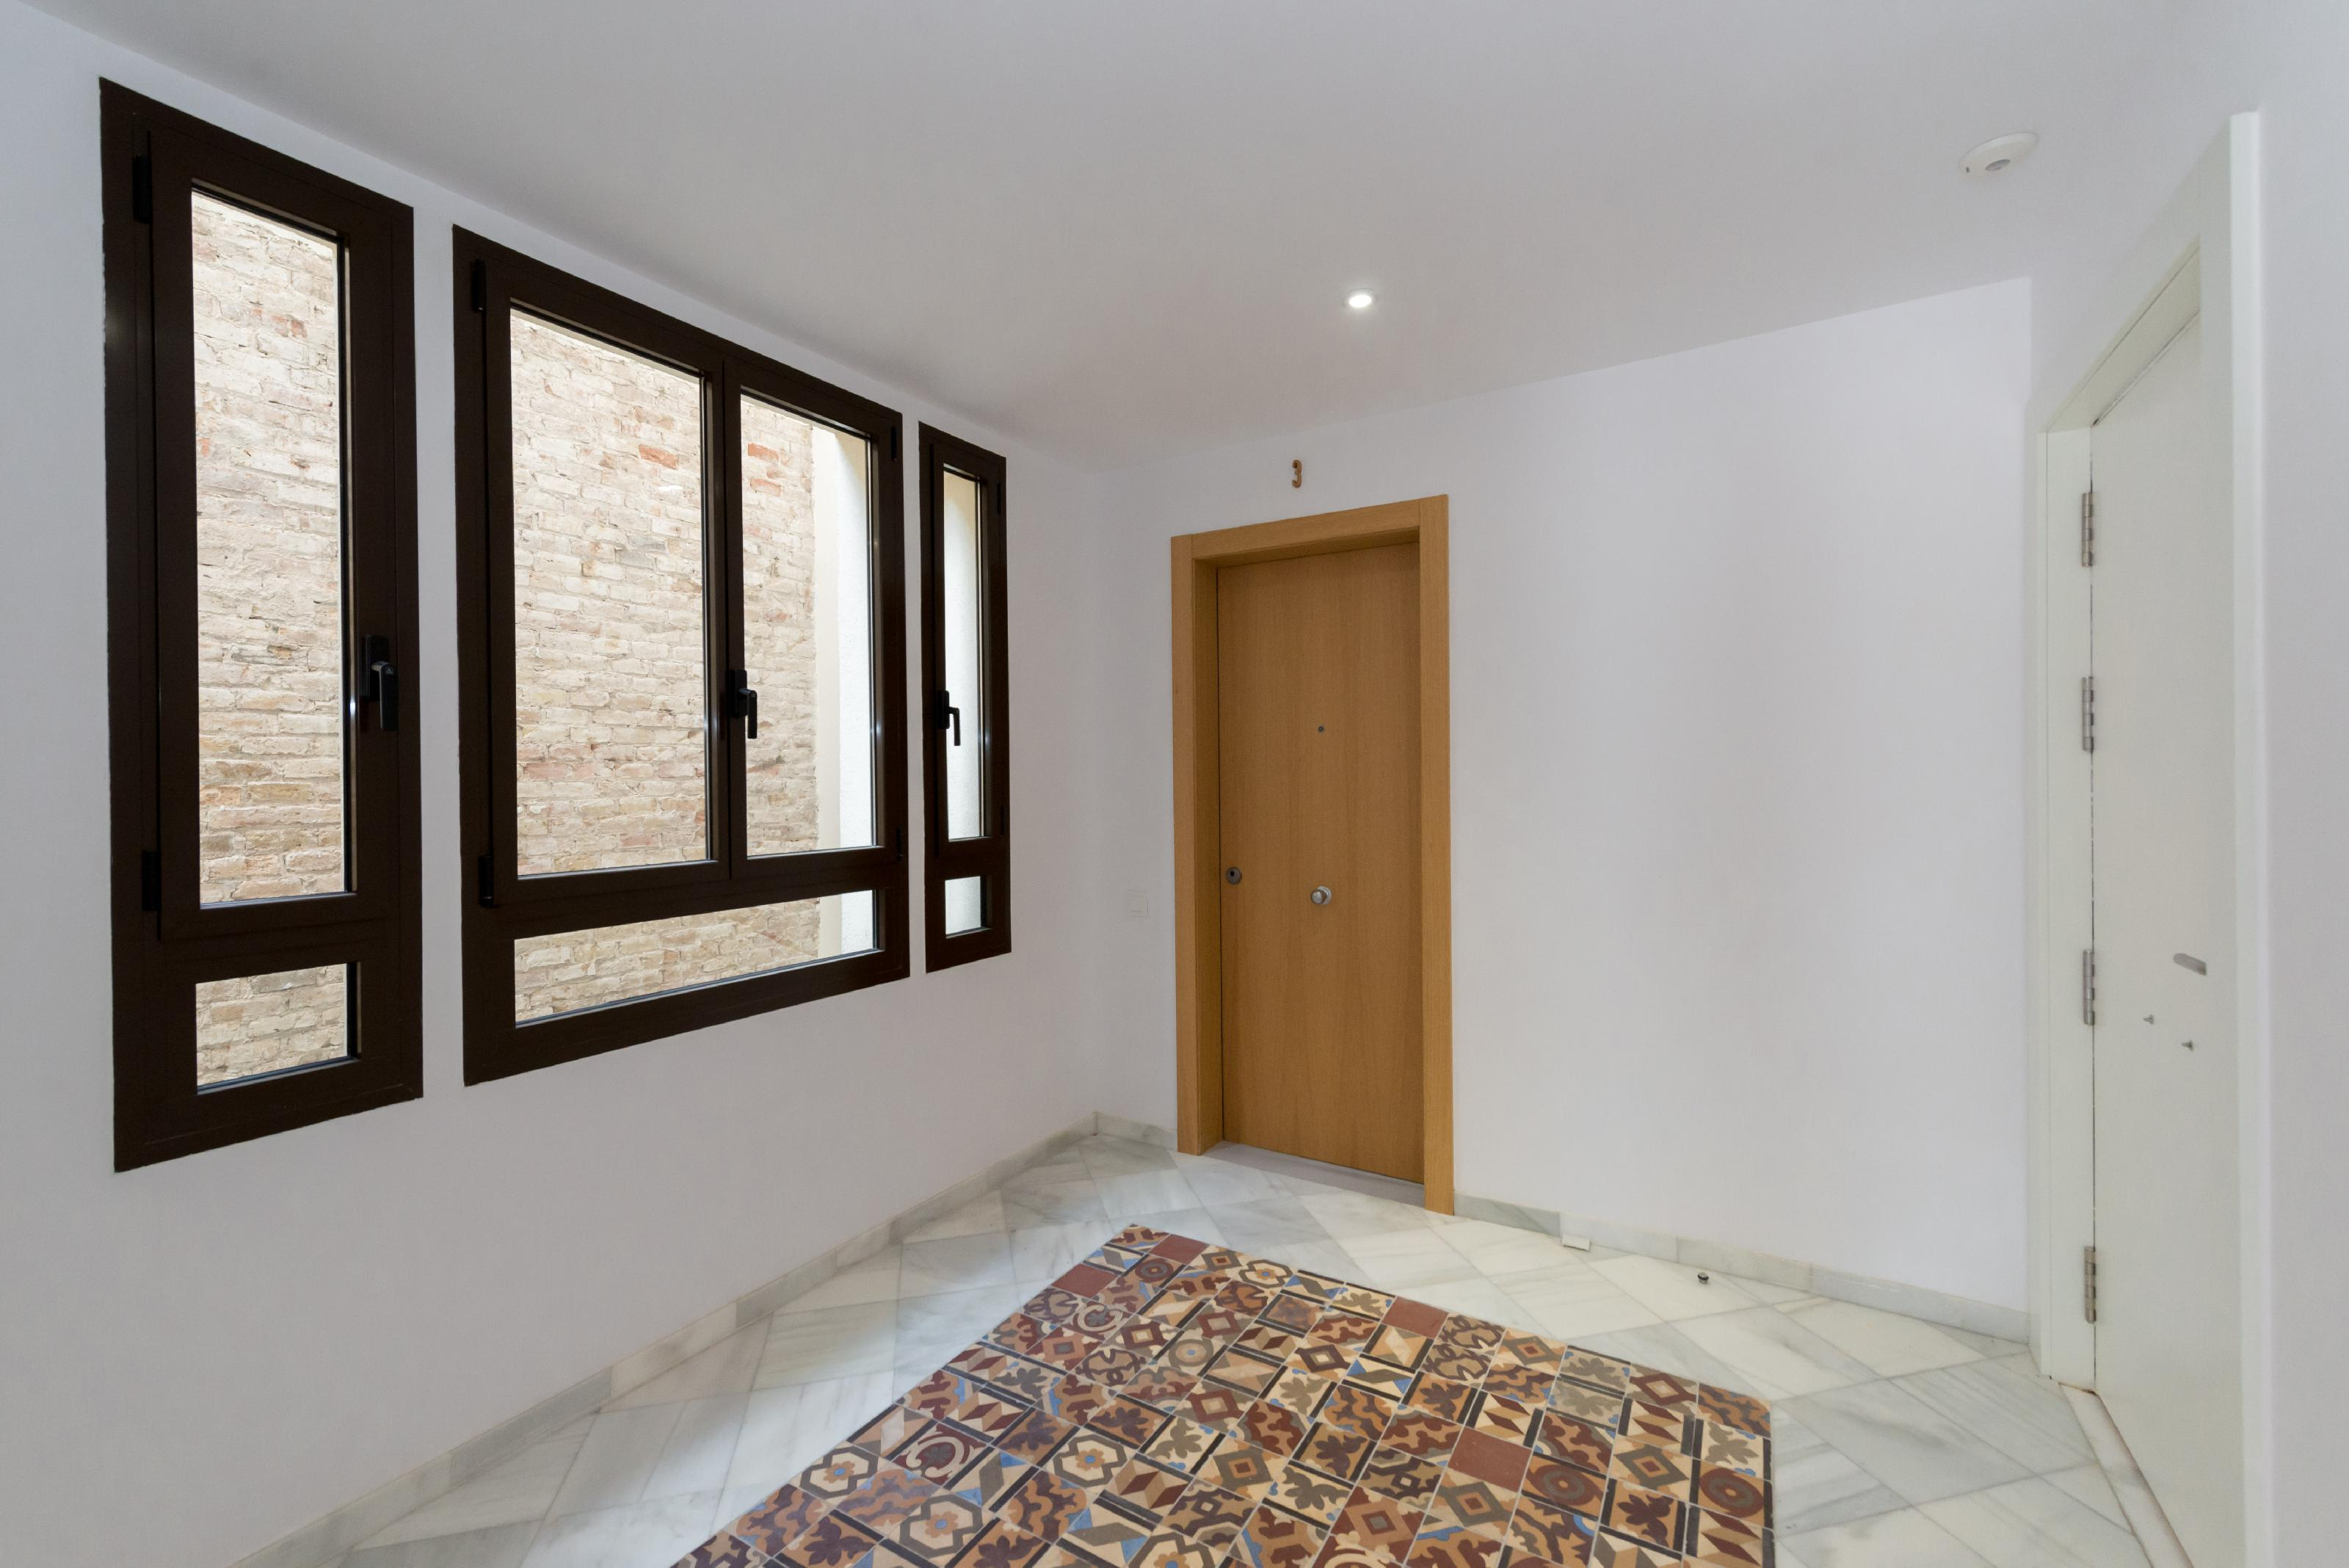 236358 Flat for sale in Eixample, Old Left Eixample 26